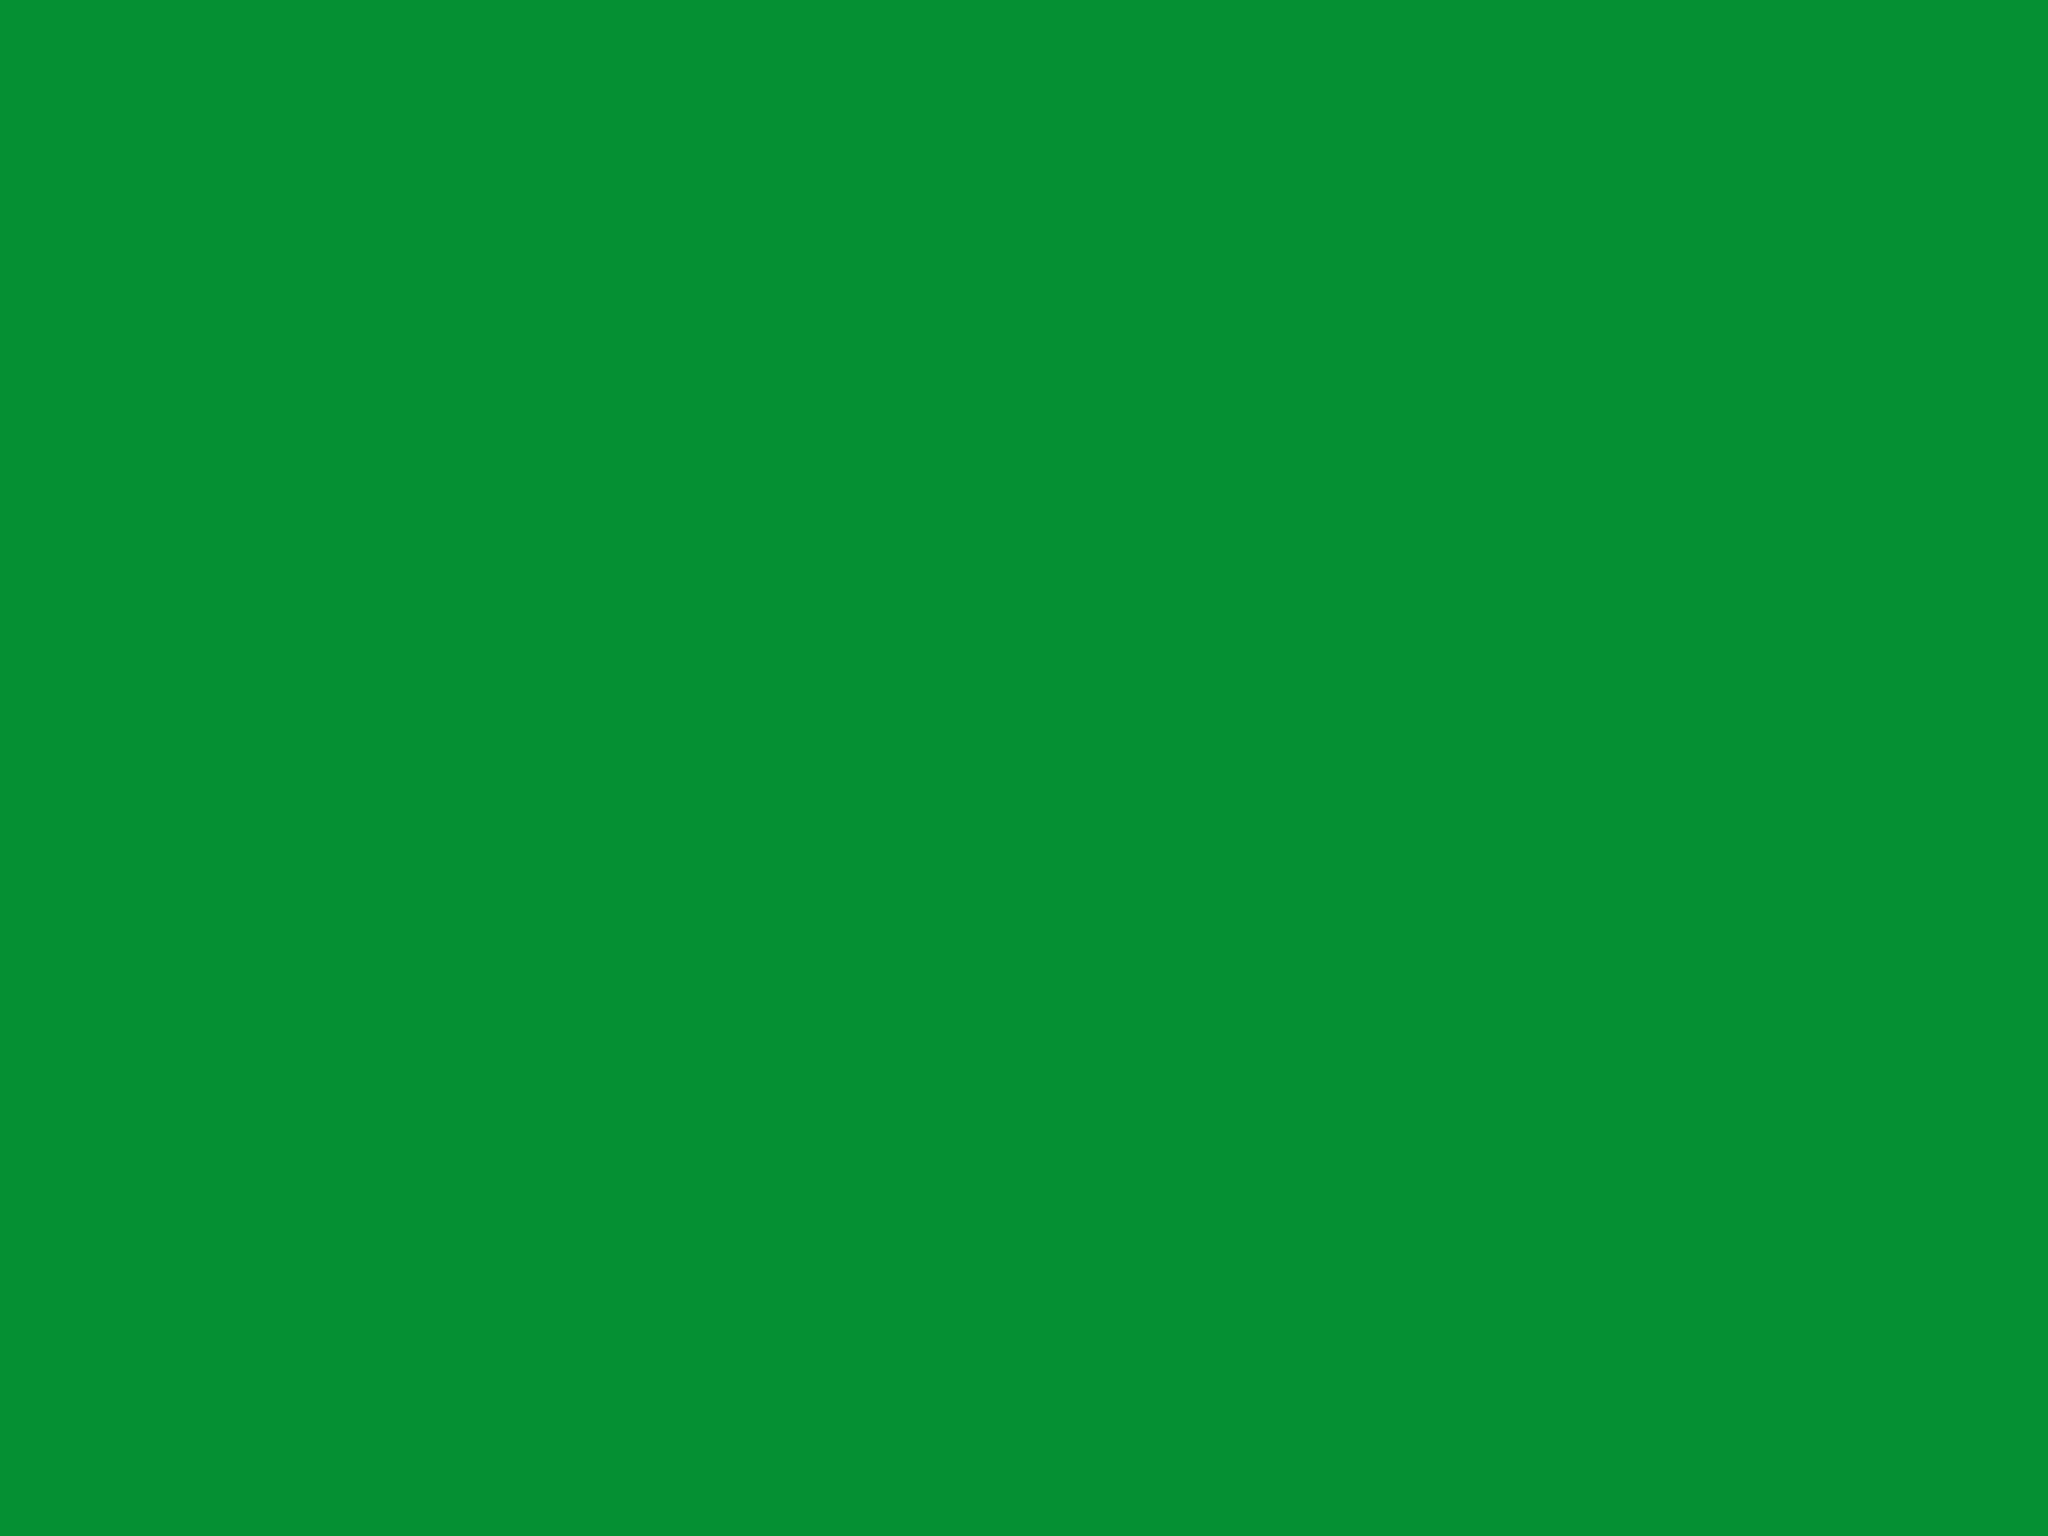 2048x1536 North Texas Green Solid Color Background